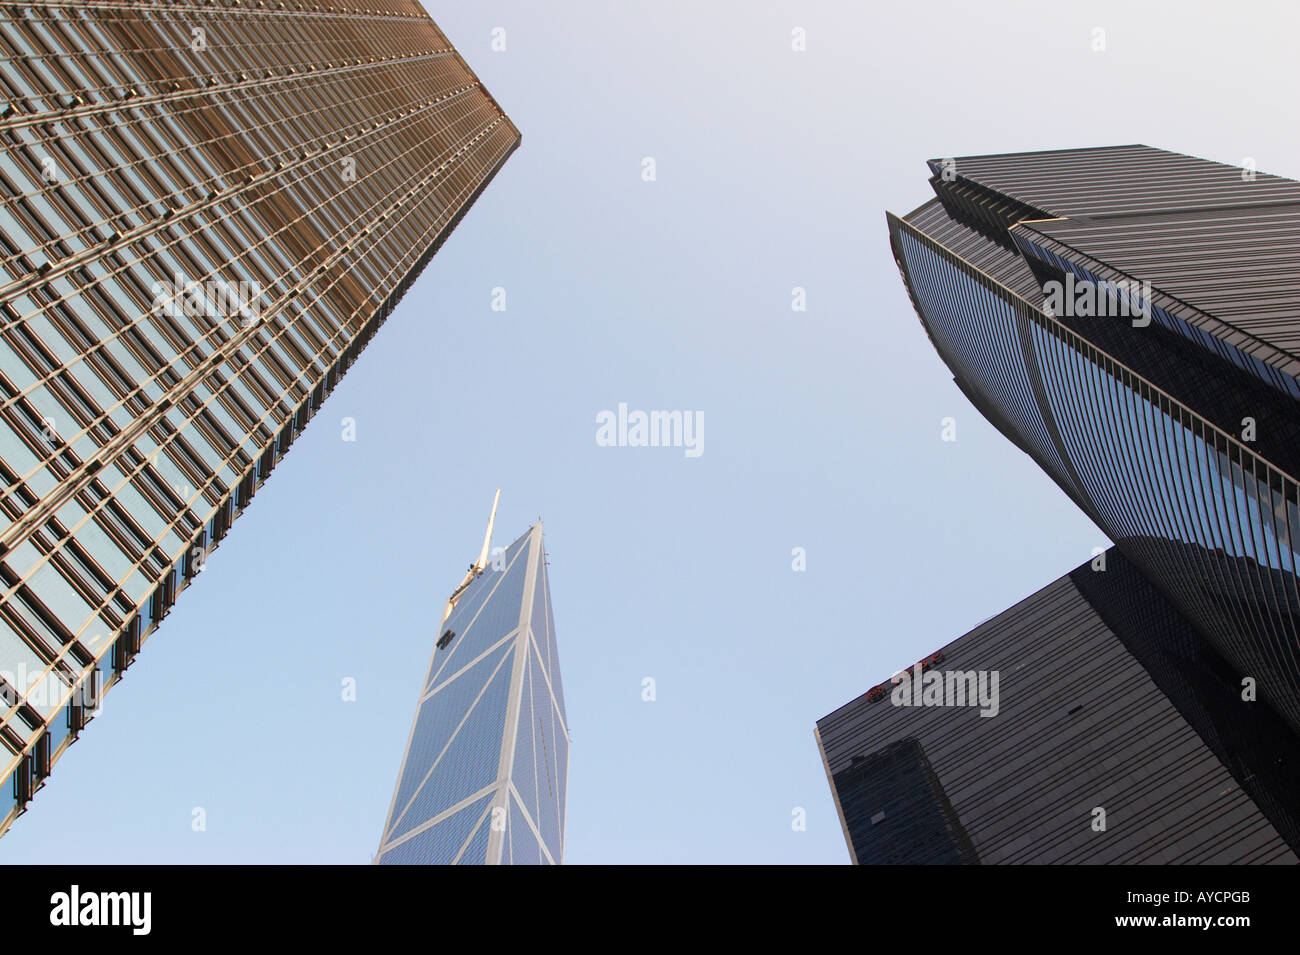 Skyscrapers, Central, Hong Kong - Stock Image